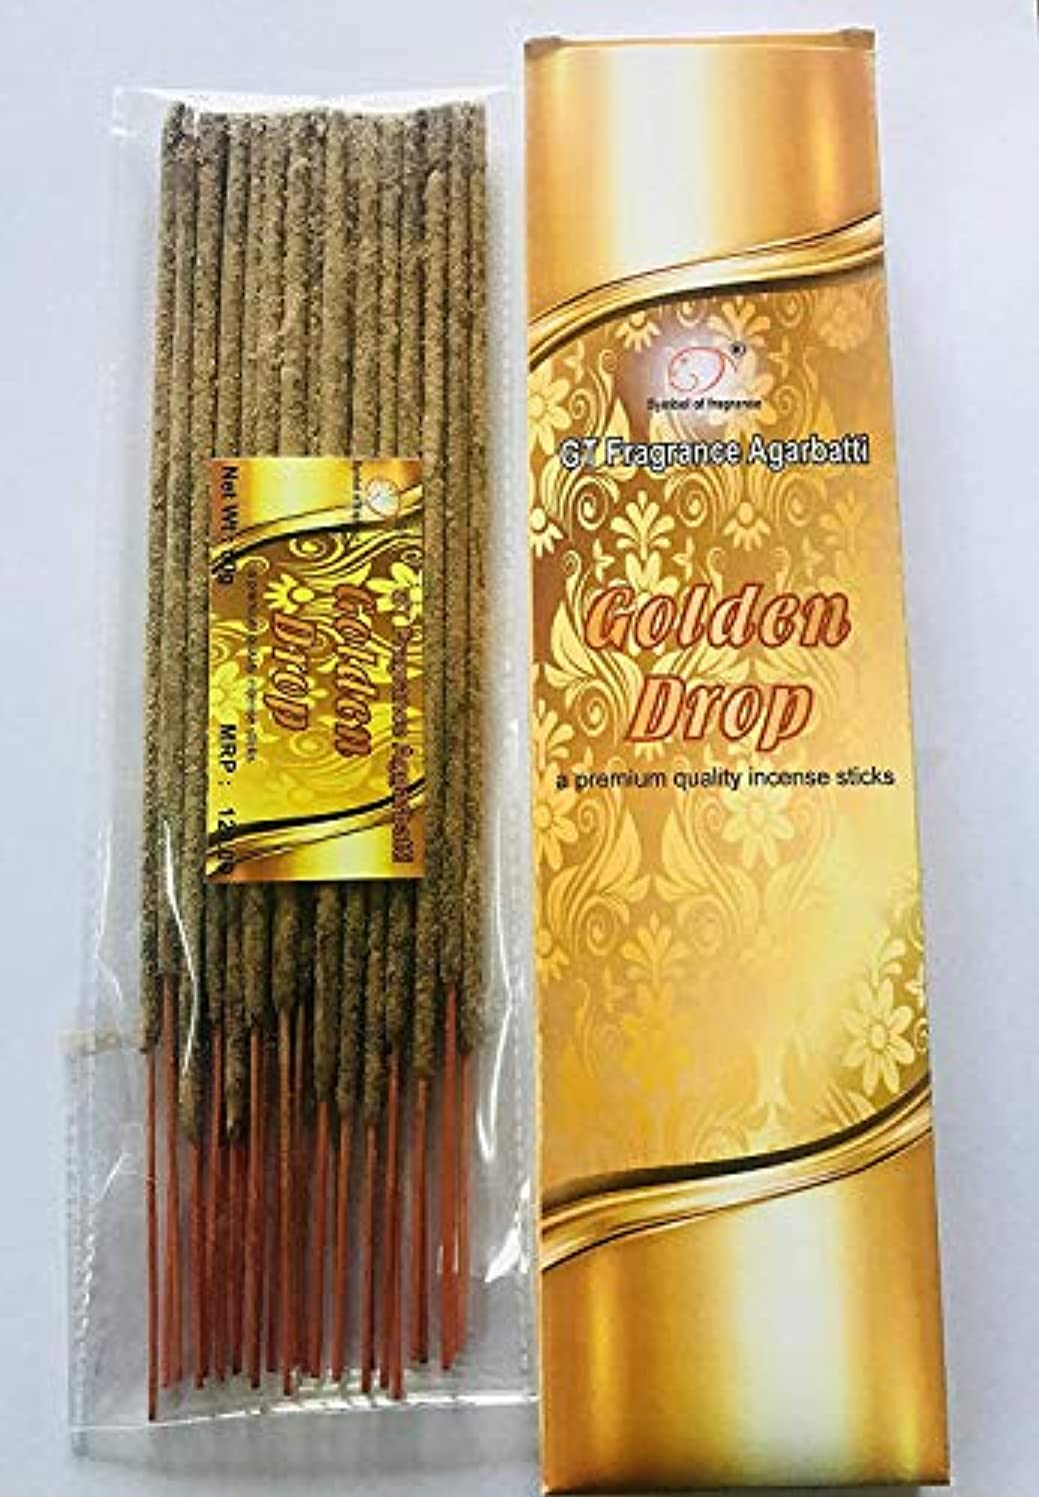 競合他社選手戸口反論者Golden Drop. Bundle of 2 Packs, a Premium Quality Incense sticks-100g